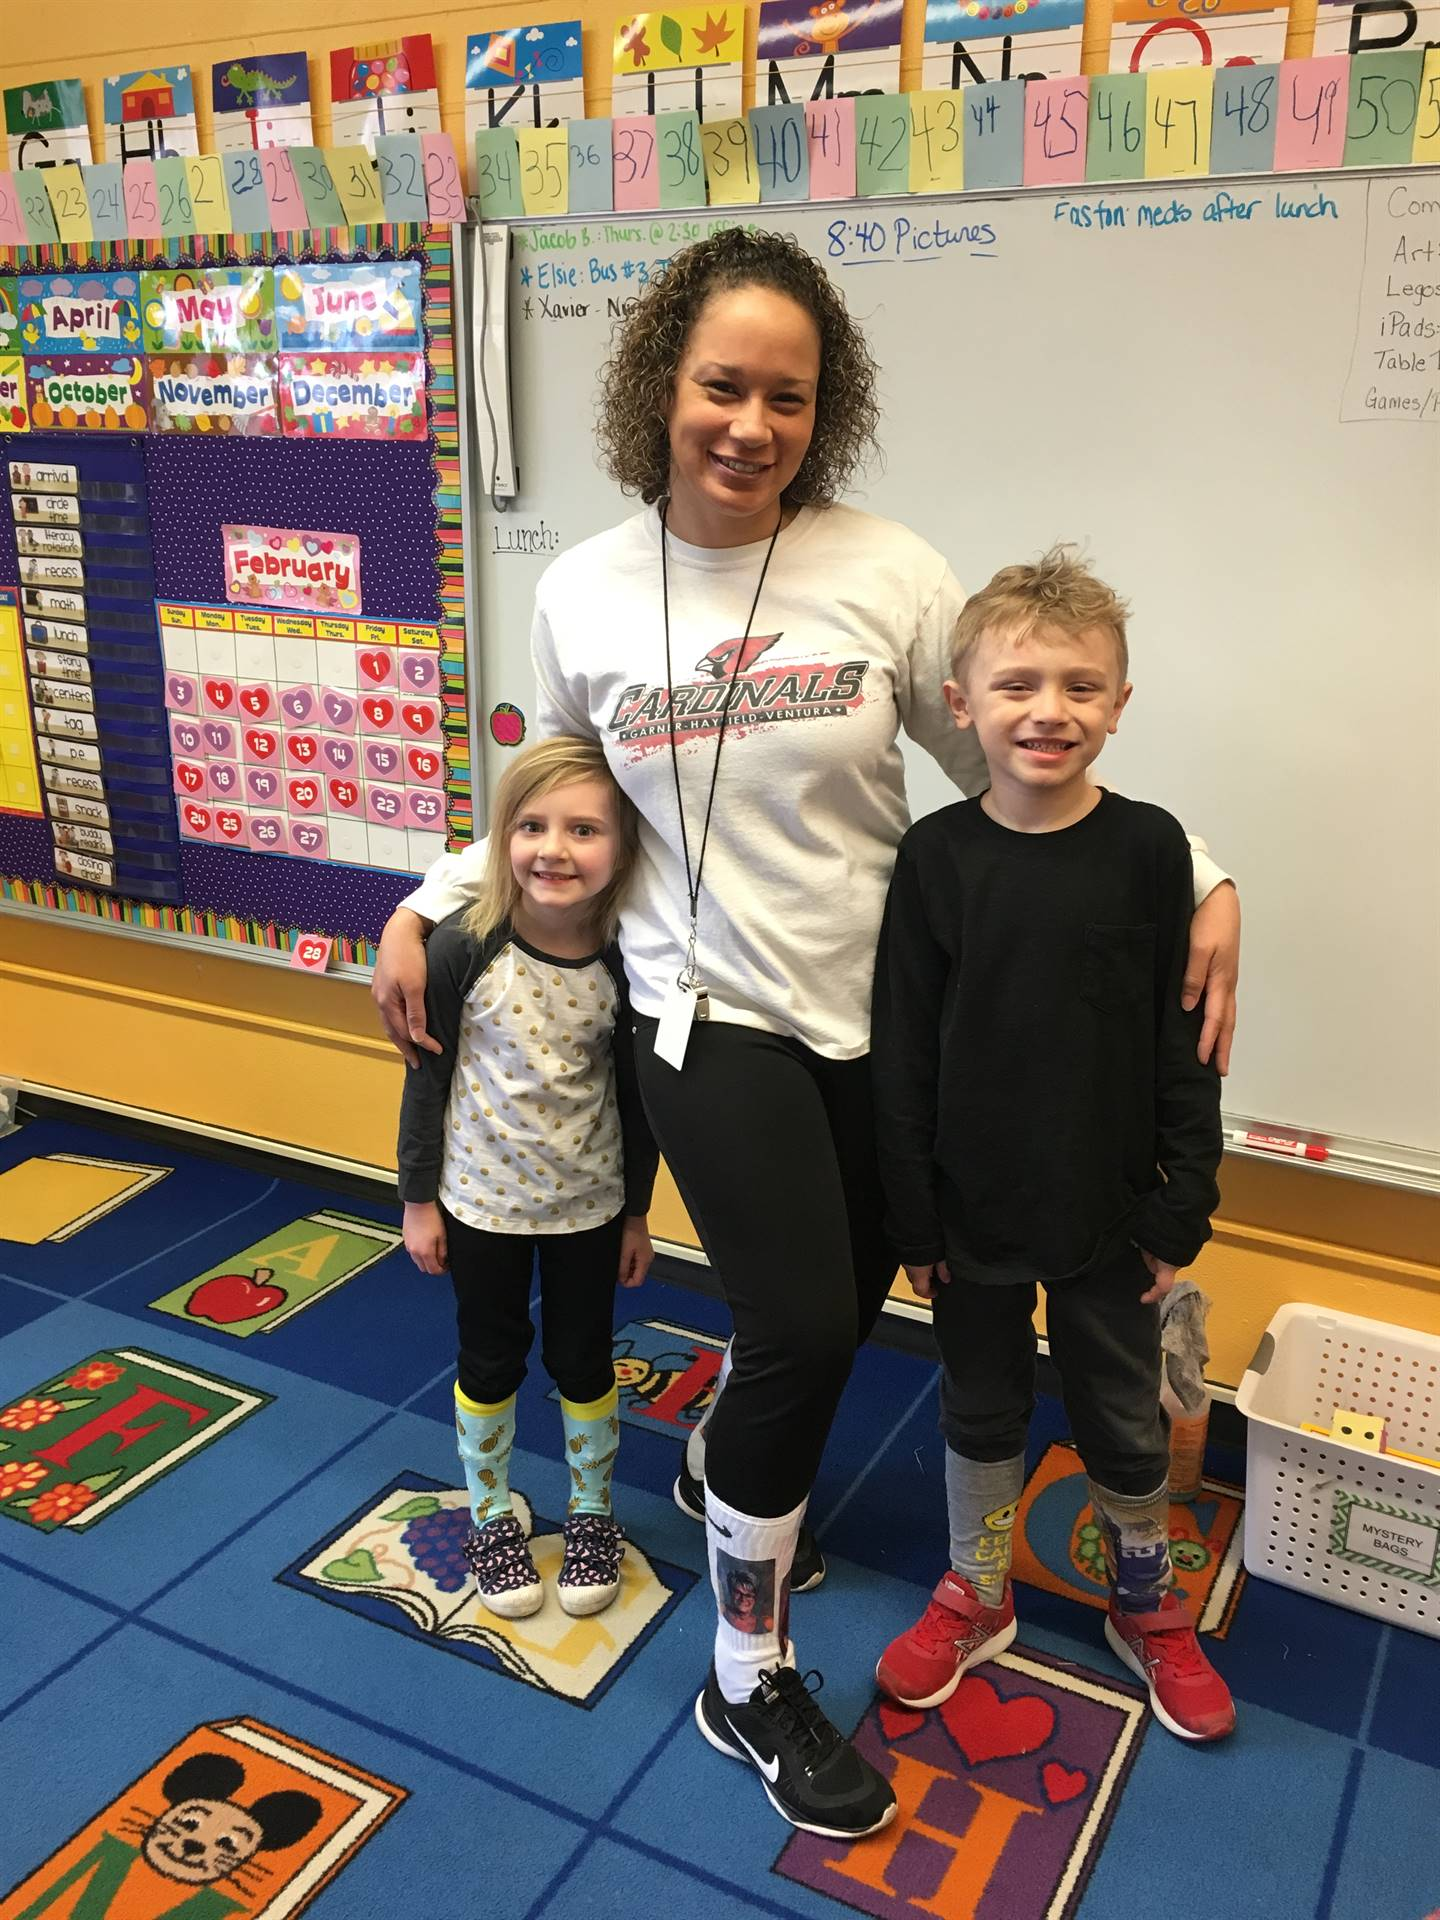 Picture of 2 students and staff member wearing crazy socks